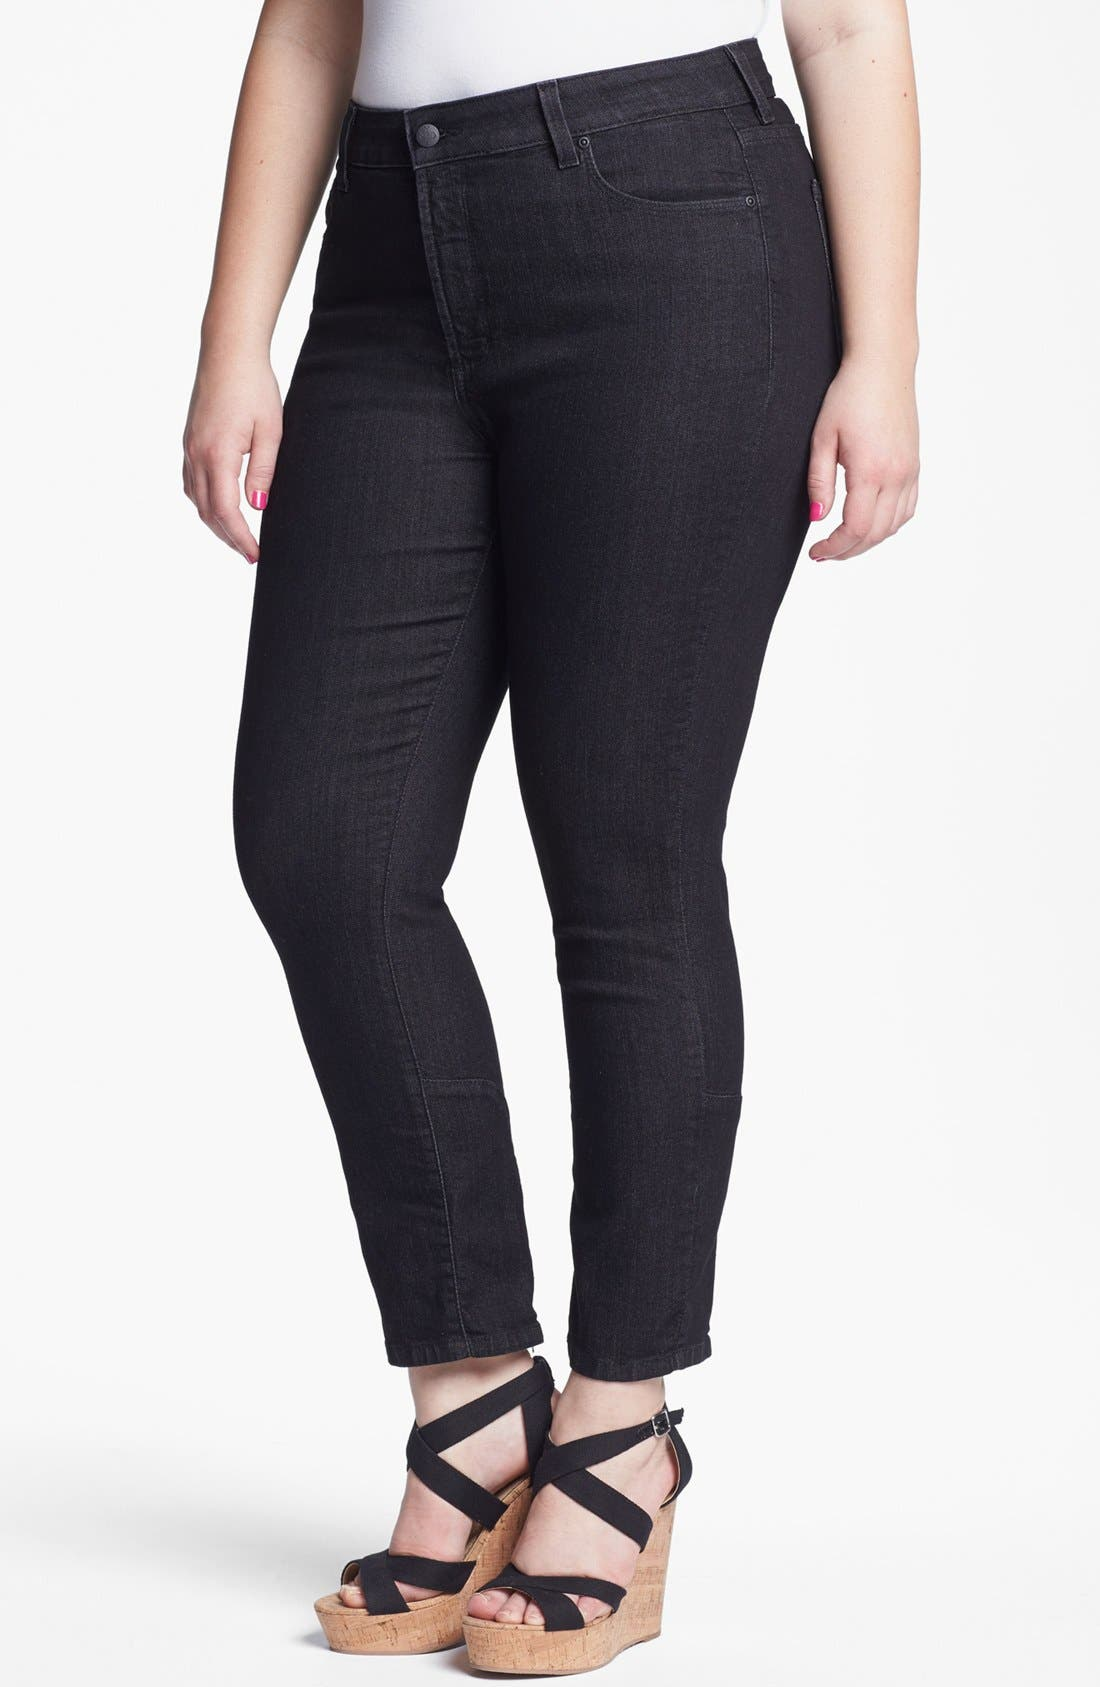 Alternate Image 1 Selected - NYDJ 'Jill' Fitted Ankle Jeans (Plus Size)